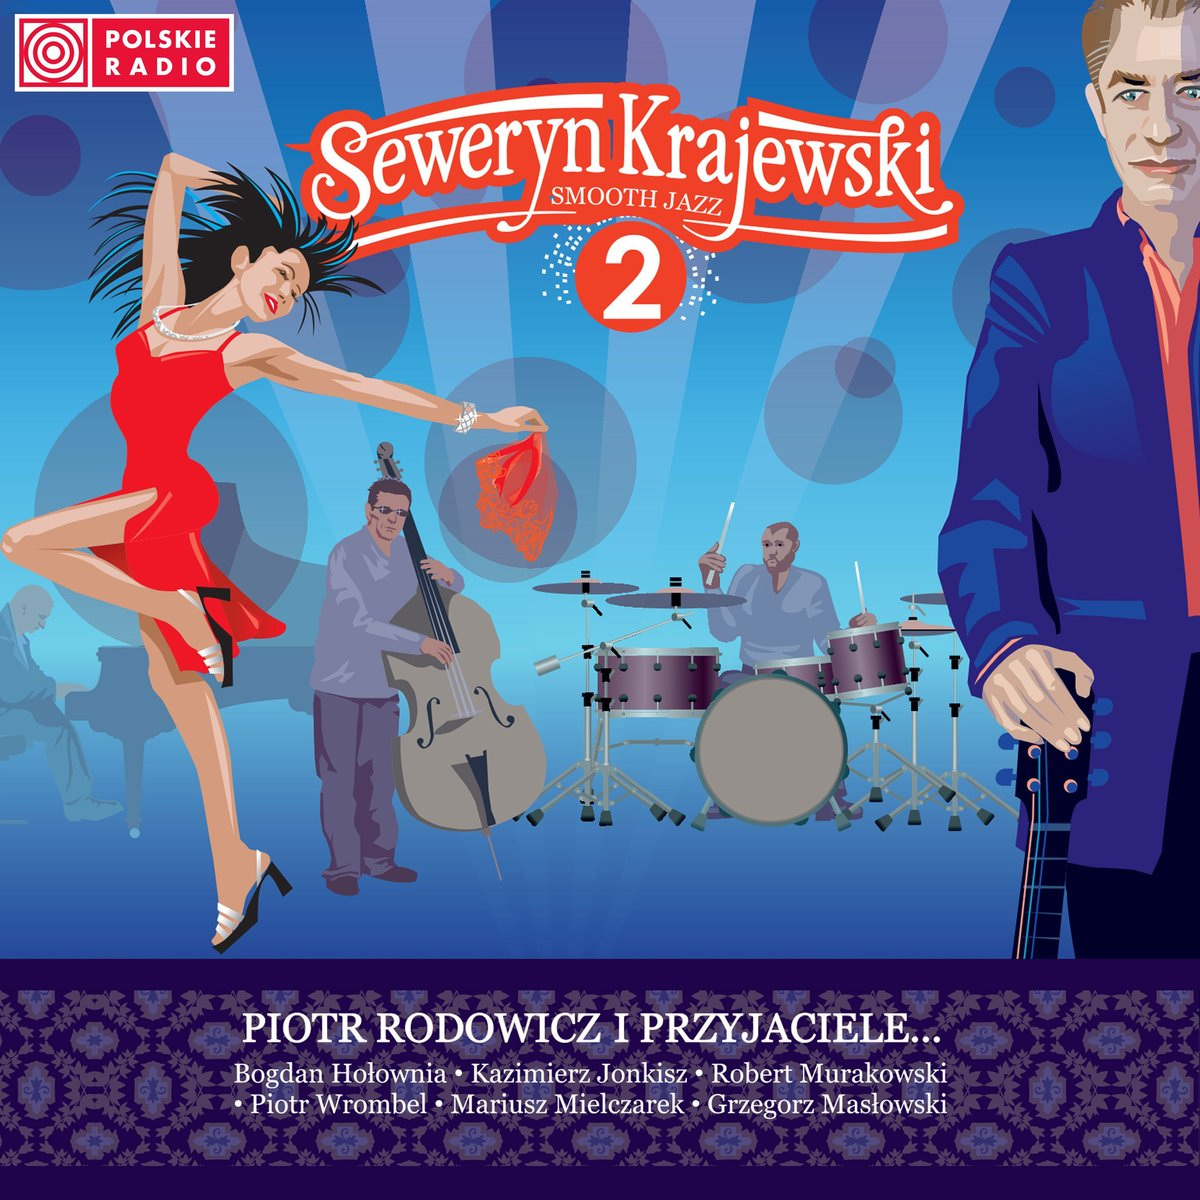 Krajewski Seweryn – Smooth Jazz 2